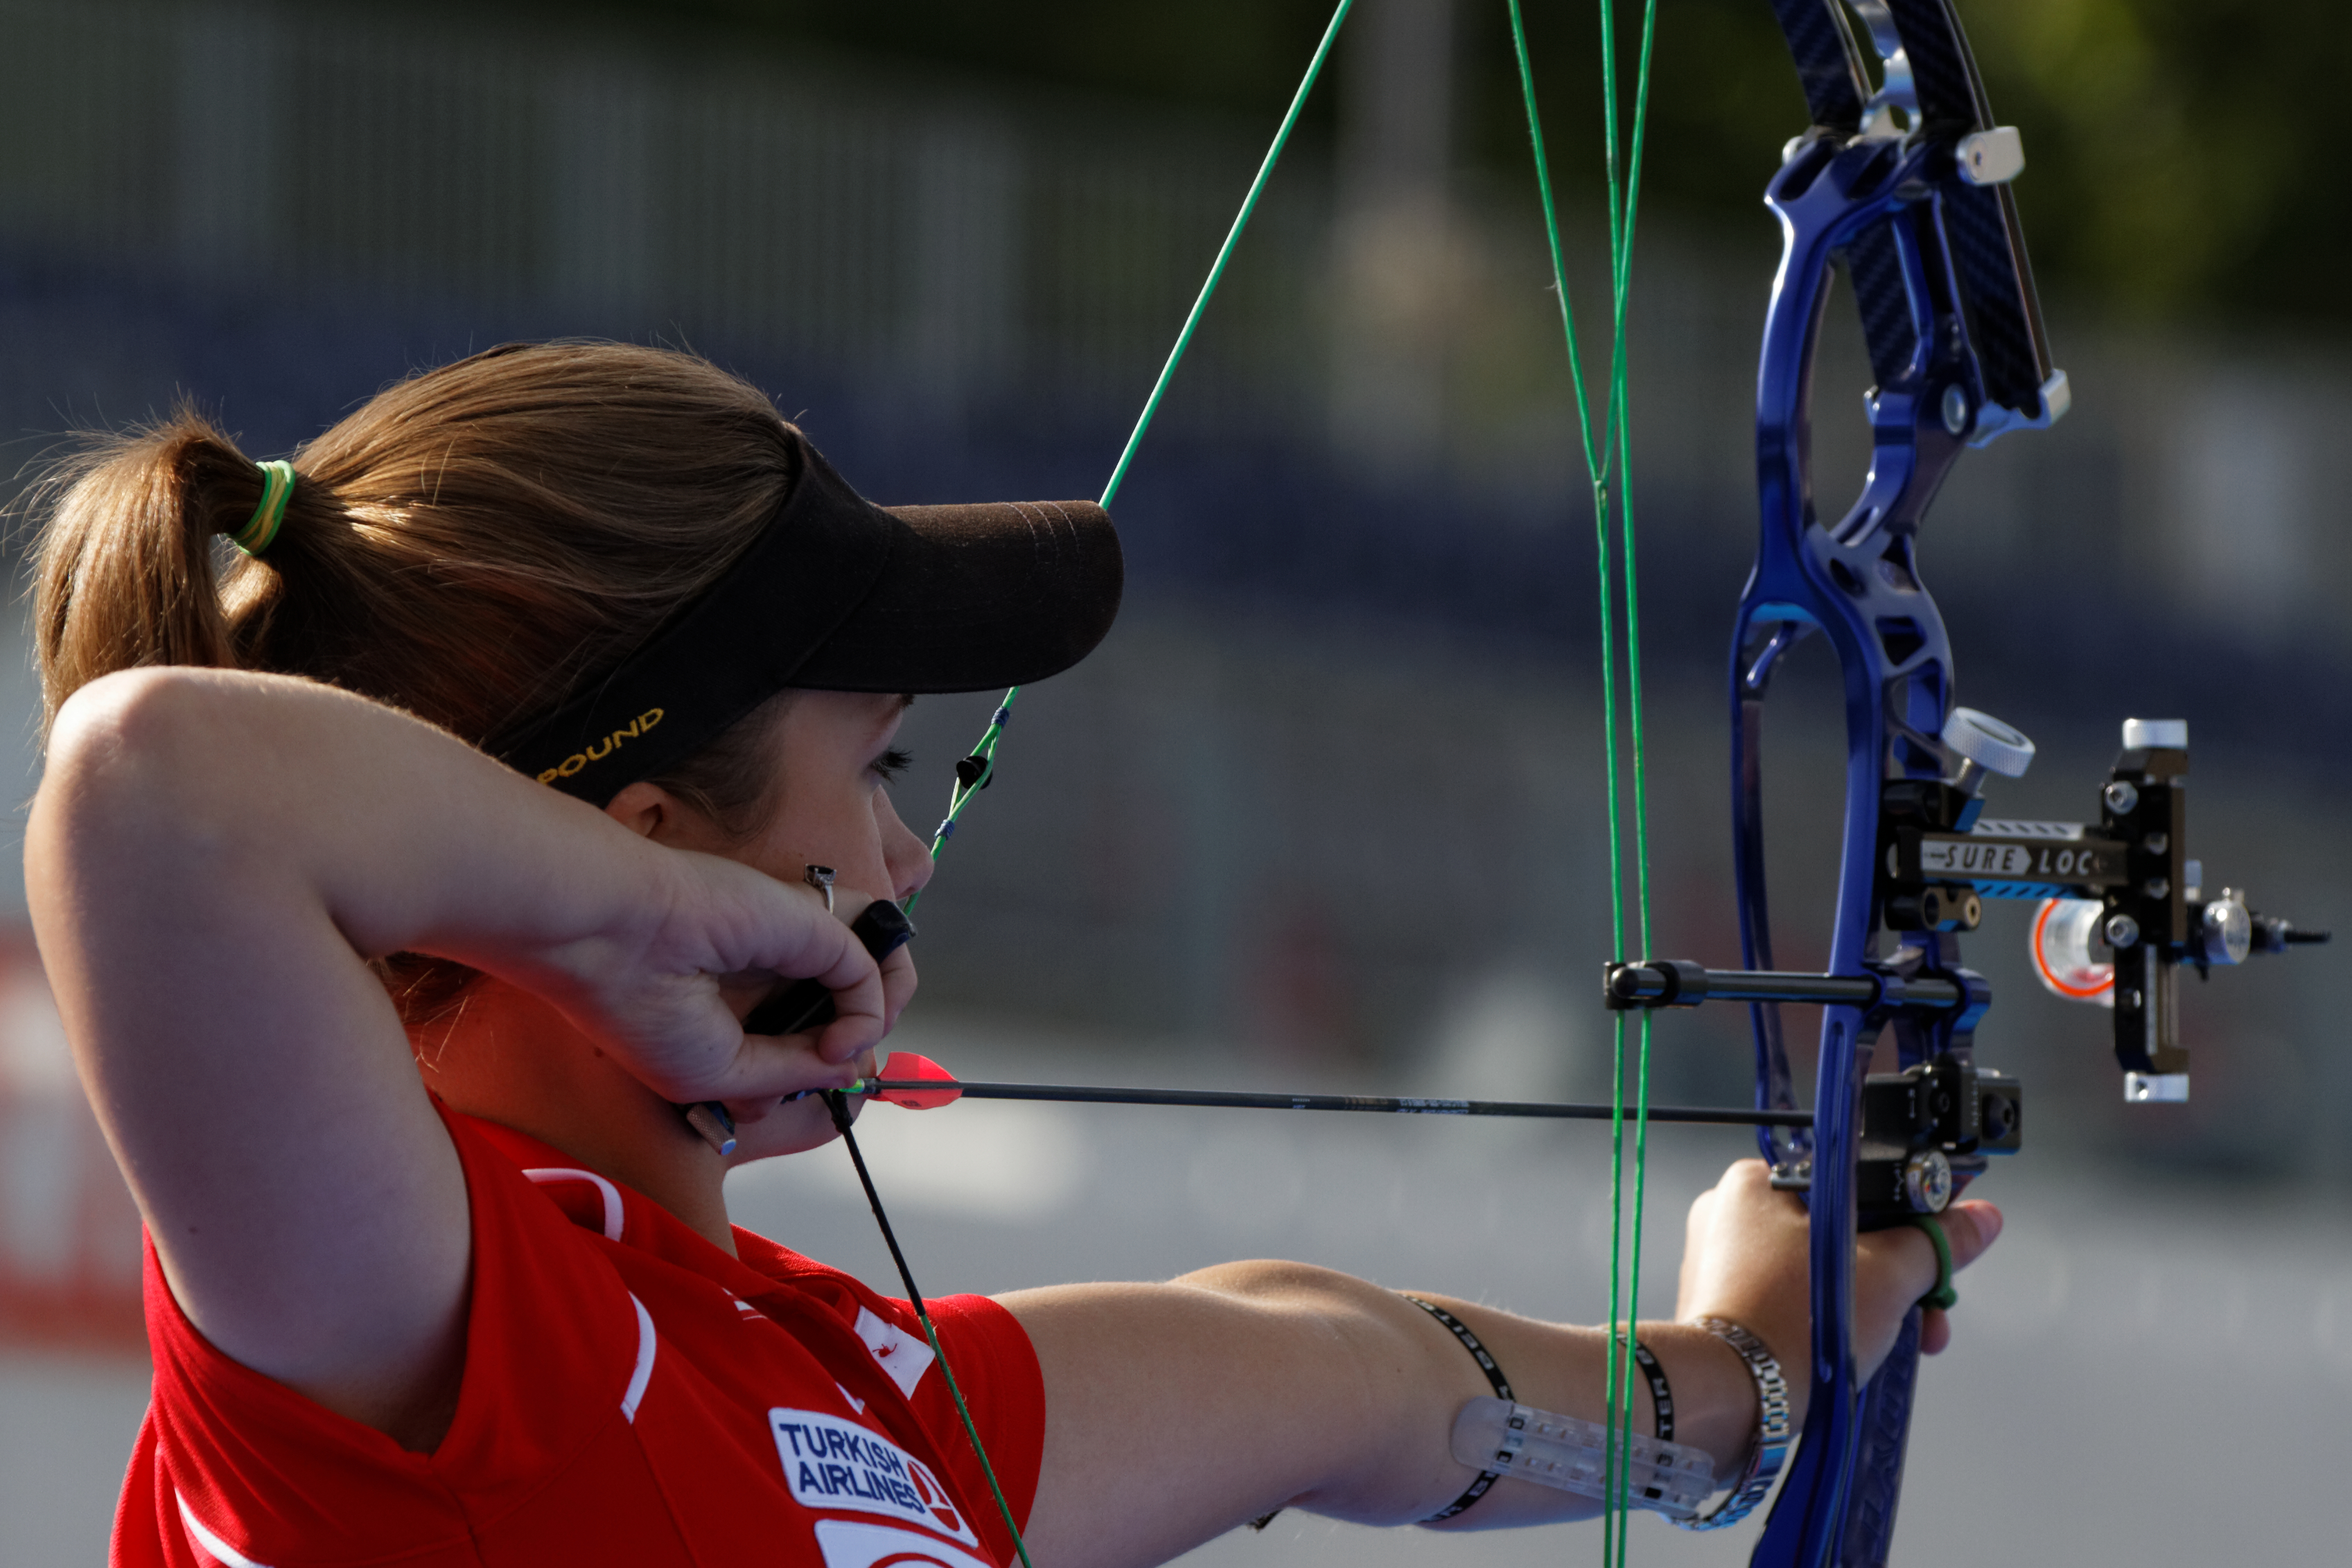 a history and description of the game of archery History of archery 1) early origins | a history of archery as we study the history of archery, some authorities date the origin of archery as early as the aurignacian period, about 25,000.